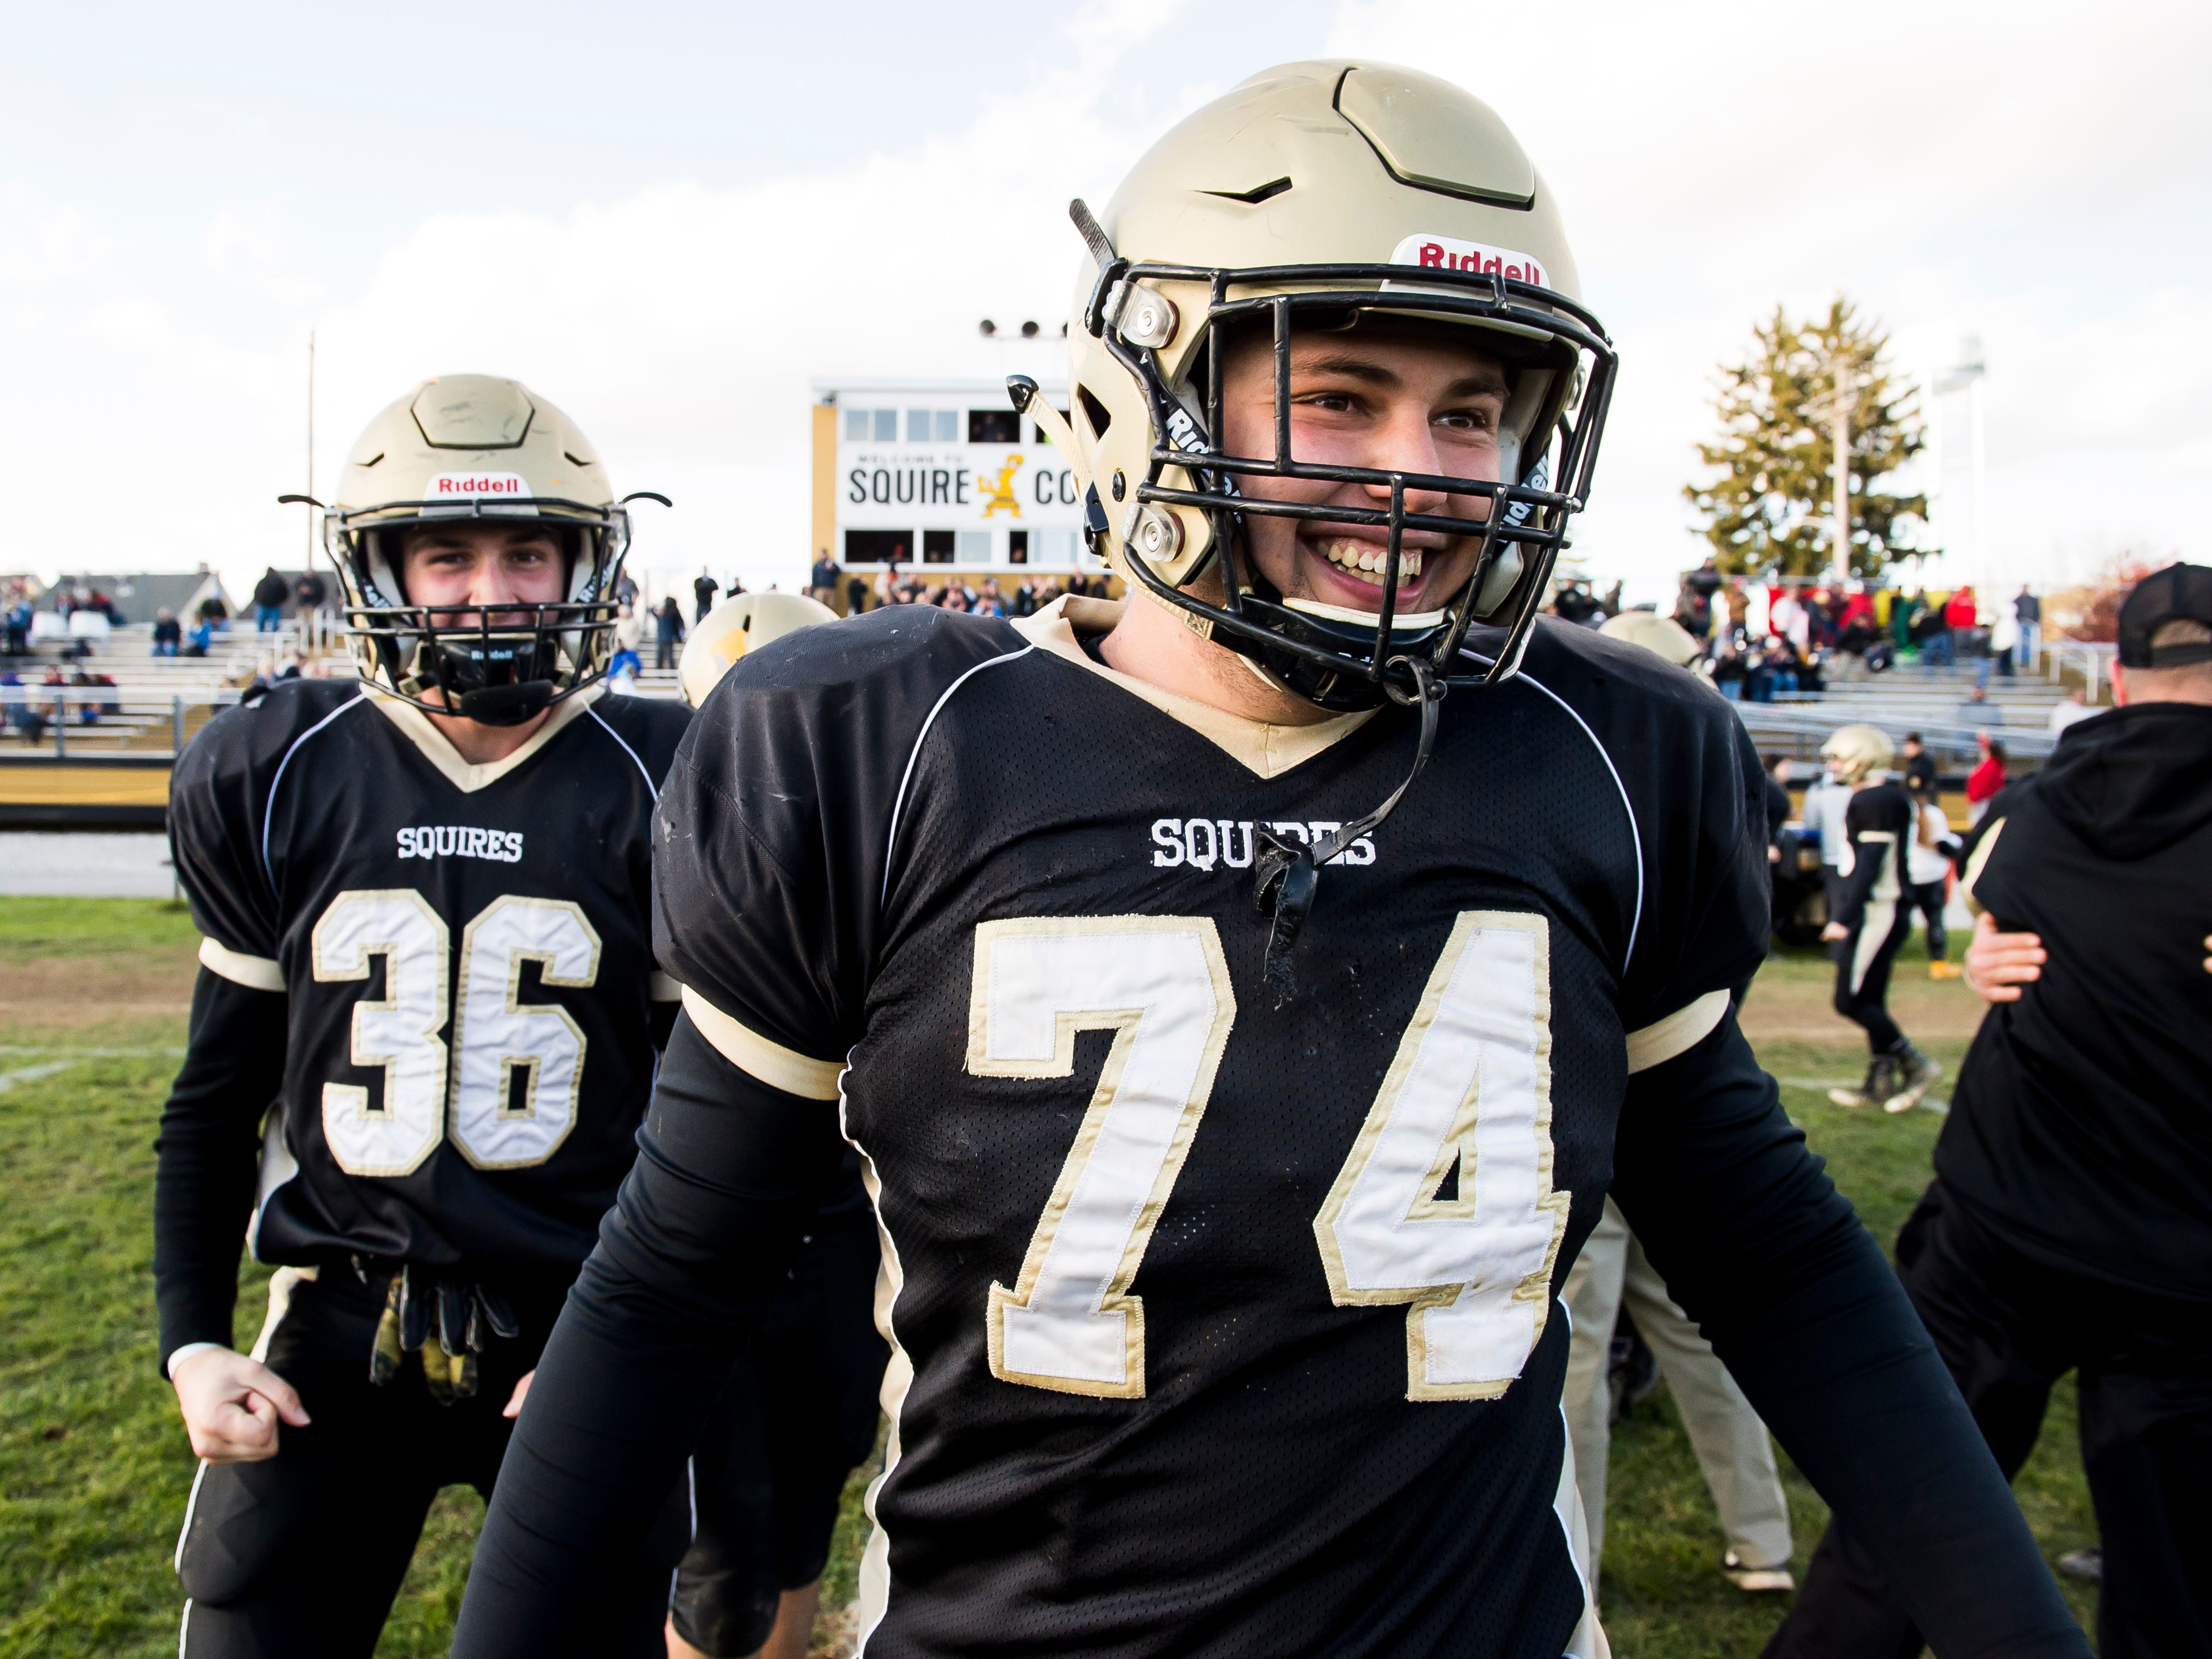 Delone Catholic's Zachary Groft (74) and Ryan Myers (36) smile after defeating Upper Dauphin 48-23 in a District III Class 2A semifinal game on Saturday, November 3, 2018. The Squires will play in the District title game against York Catholic on Friday.